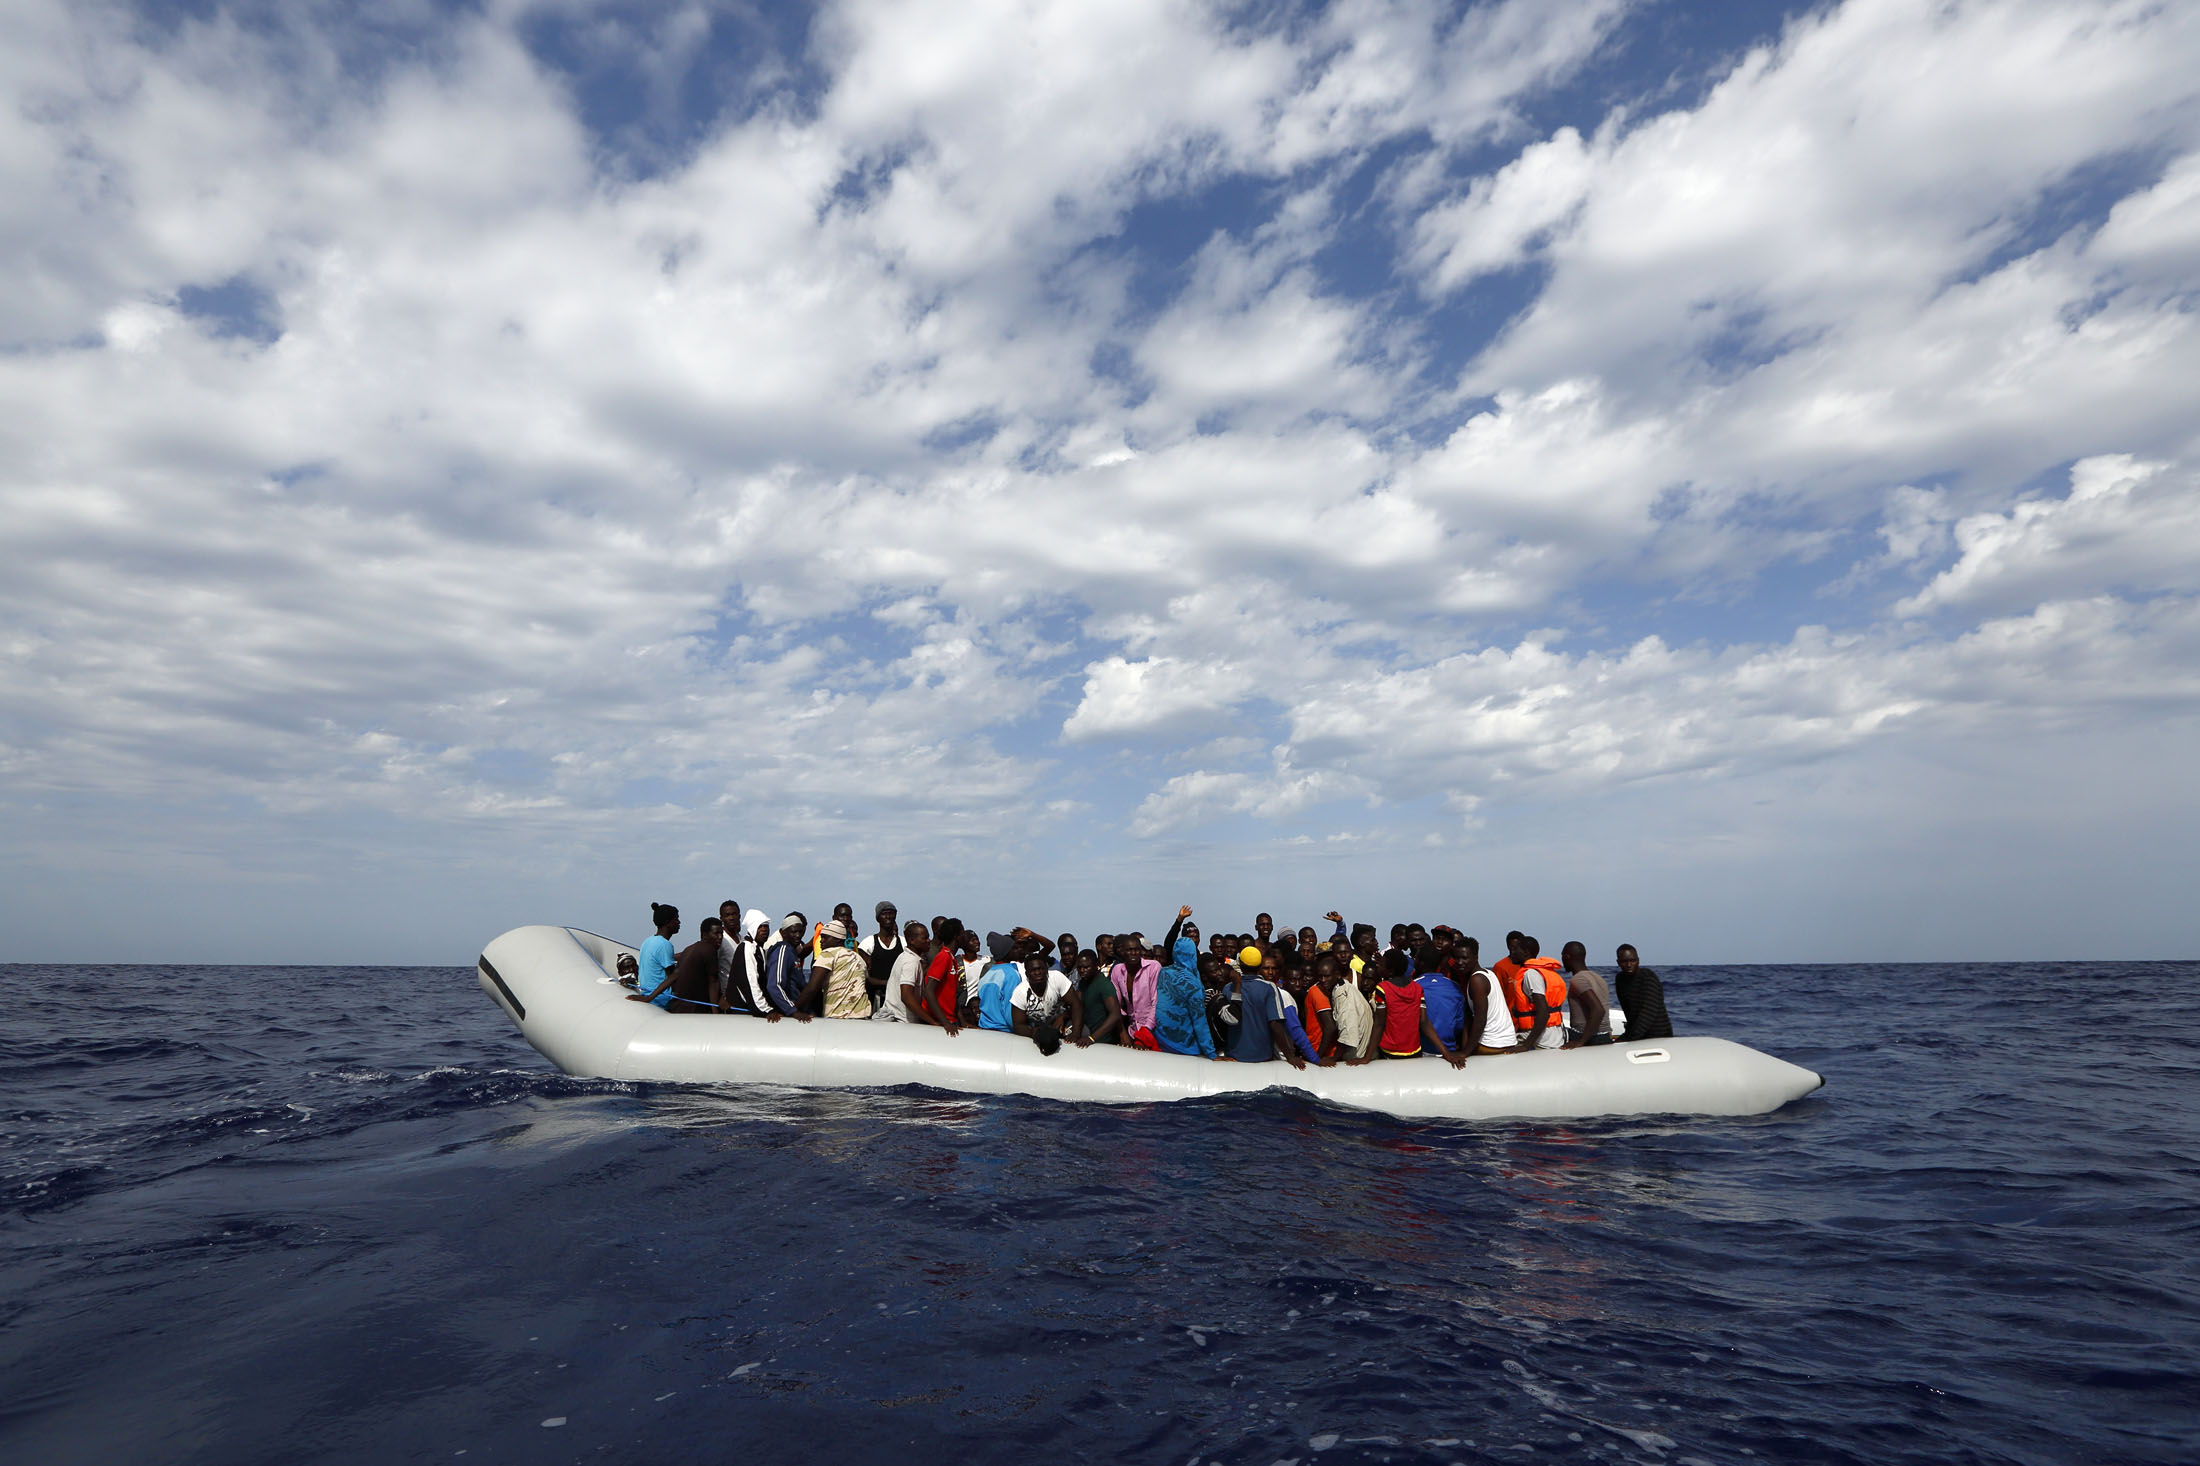 Lampedusa Tragedy Marks Start Of Deadly 2015